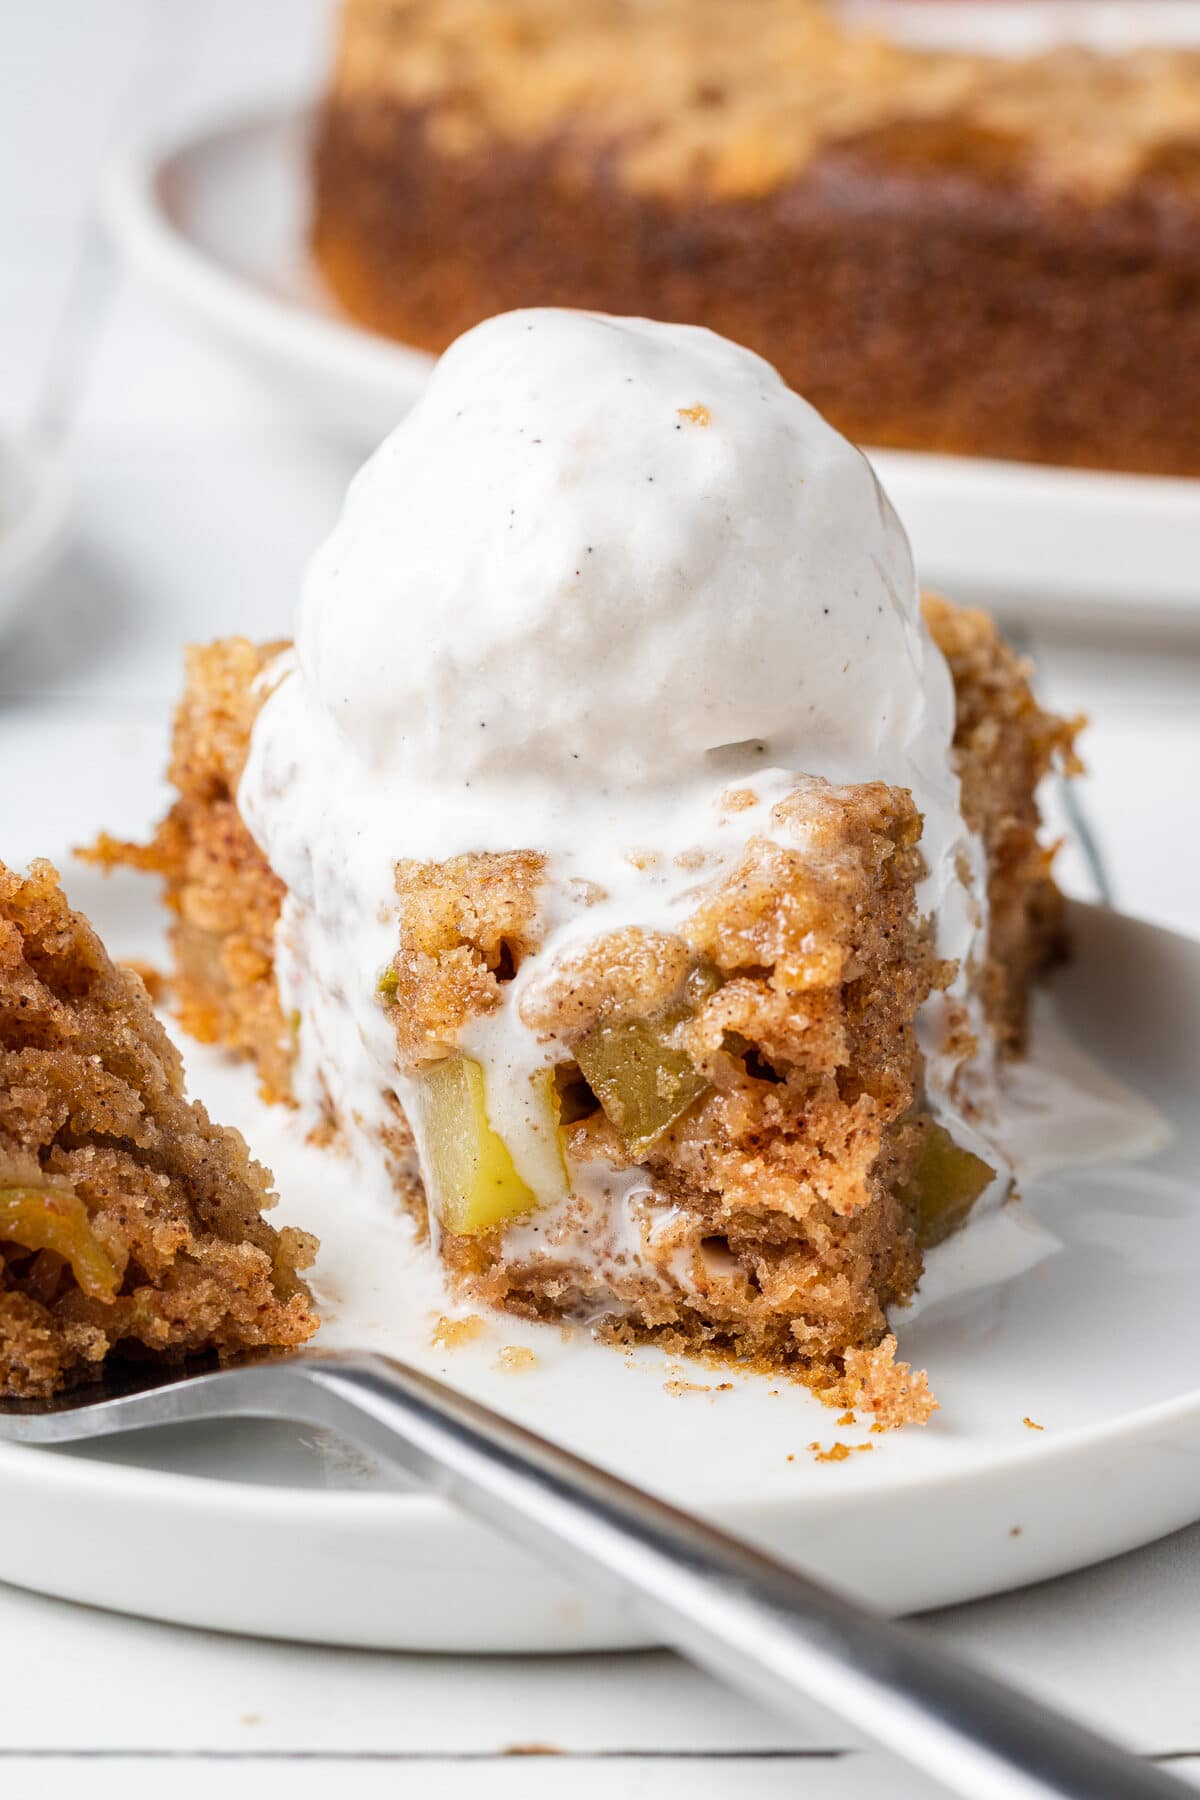 a slice of vgan apple cake on a plate with vegan ice cream melting on top